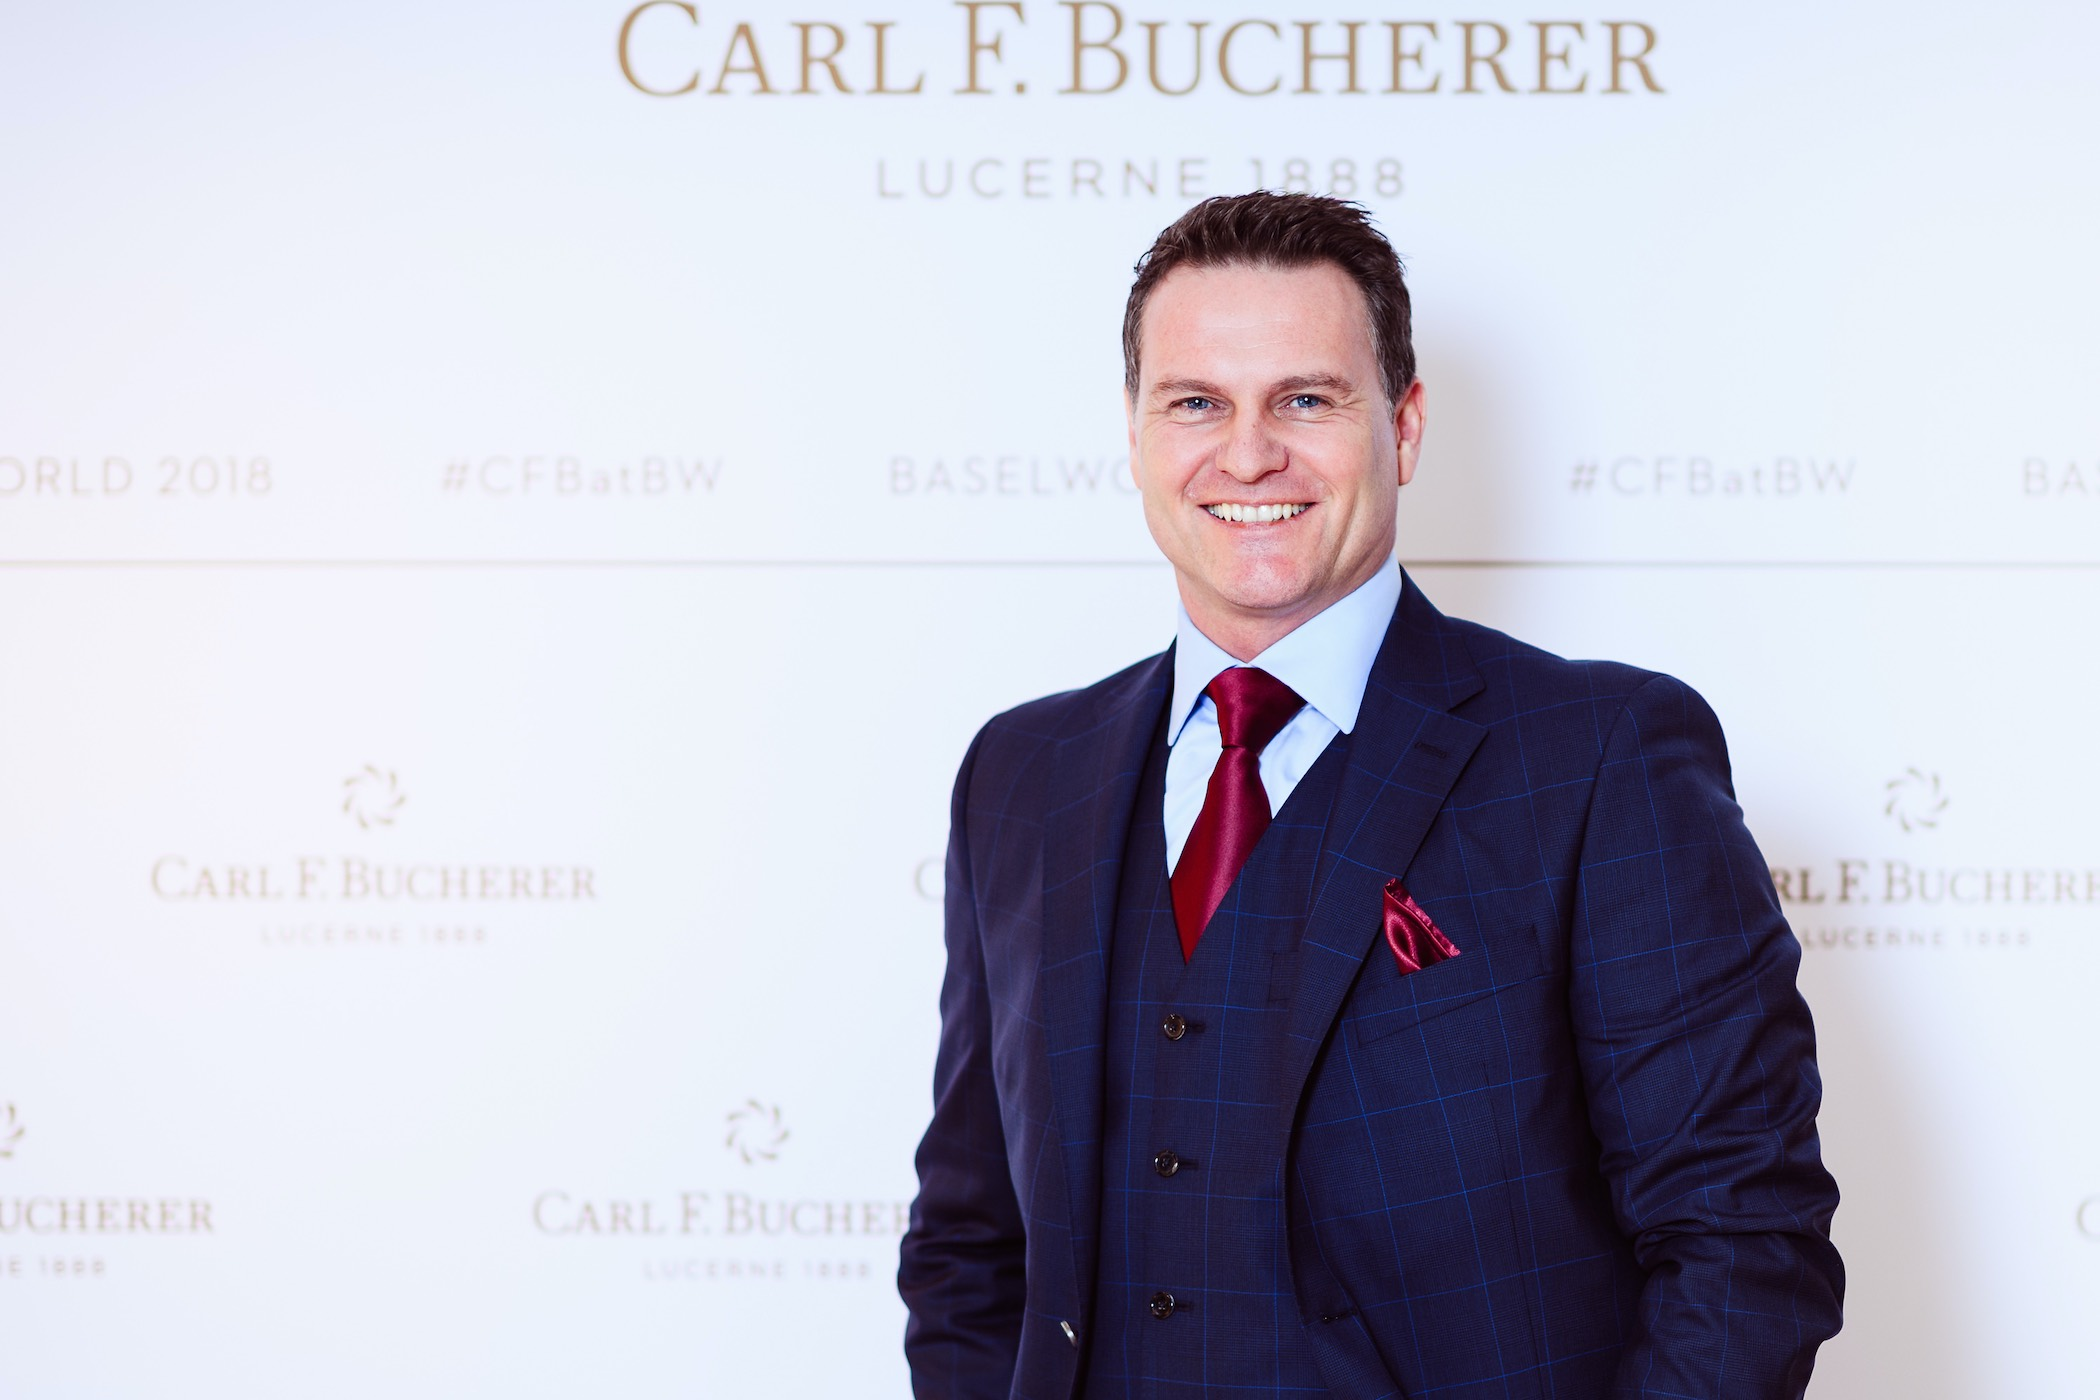 Sascha Moeri CEO Carl F. Bucherer Interview Business